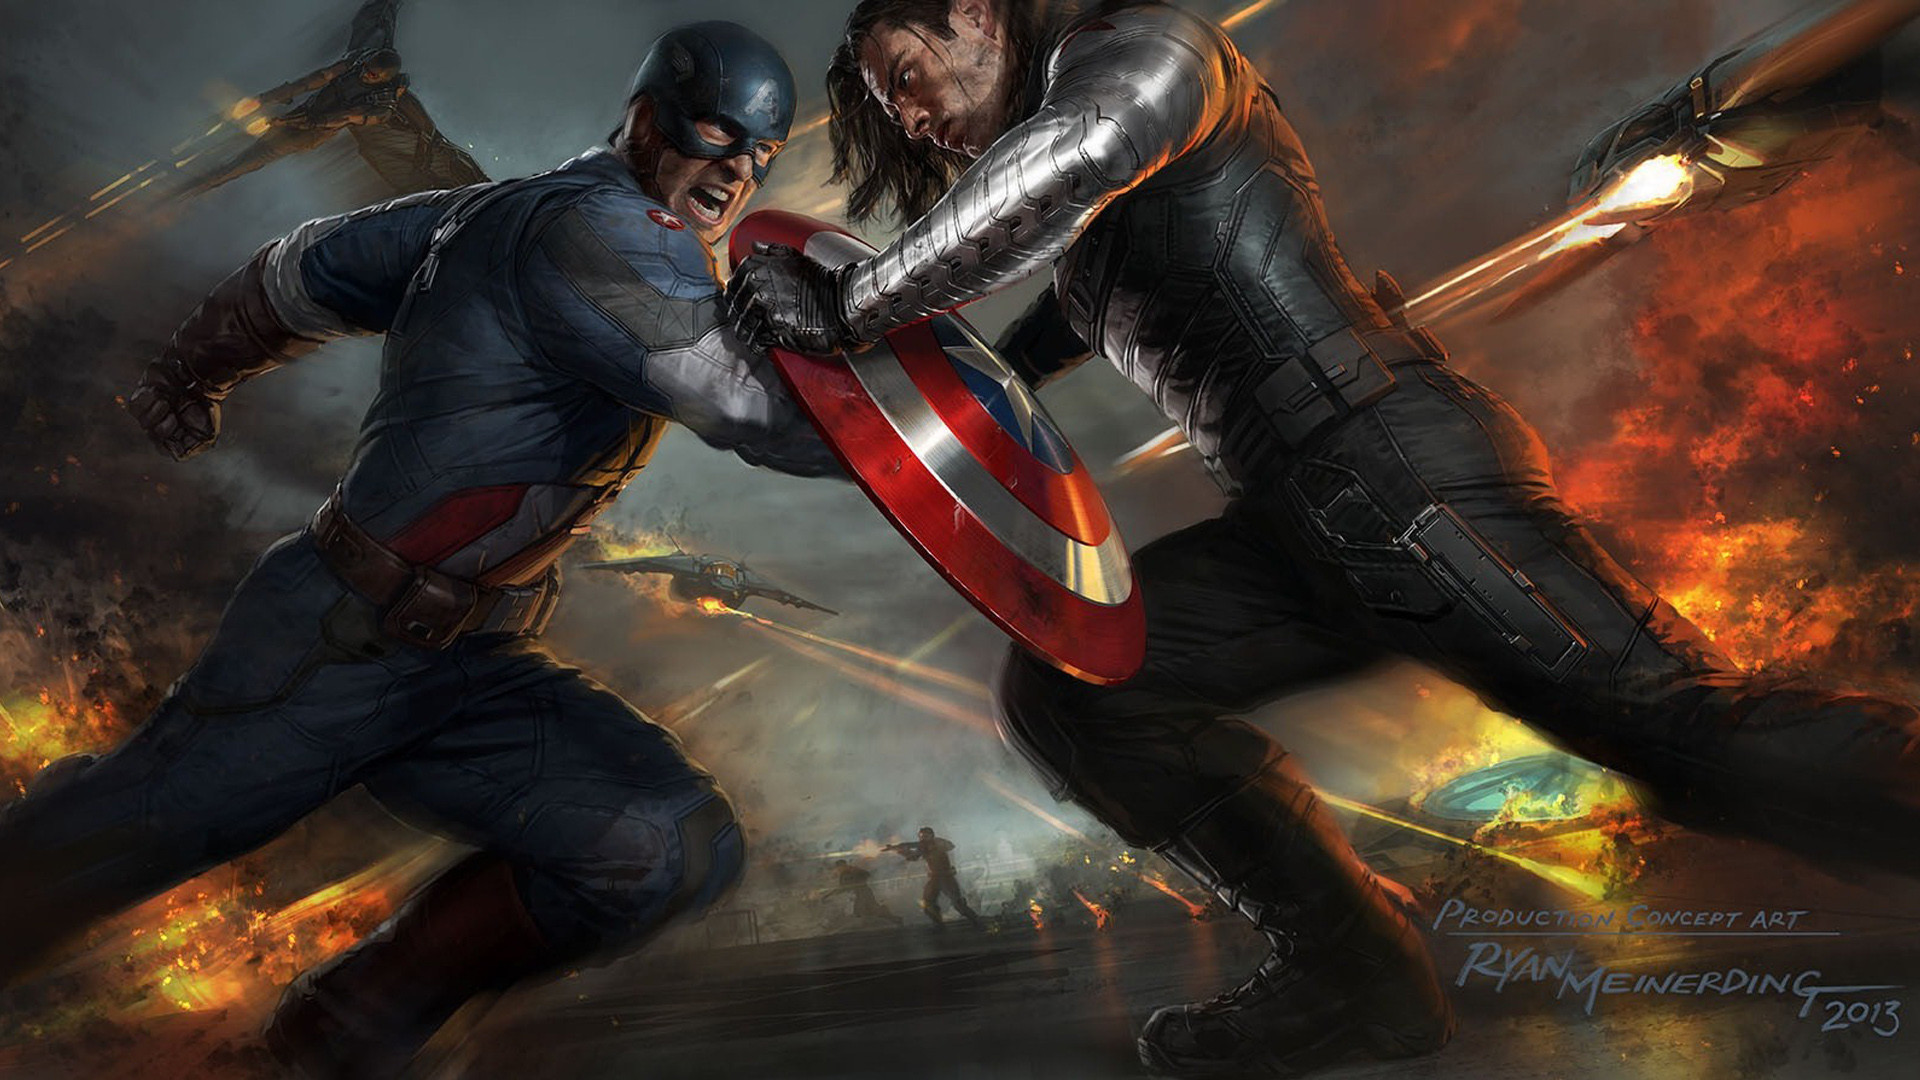 Captain America The Winter Soldier Artwork Wallpapers   HD Wallpapers